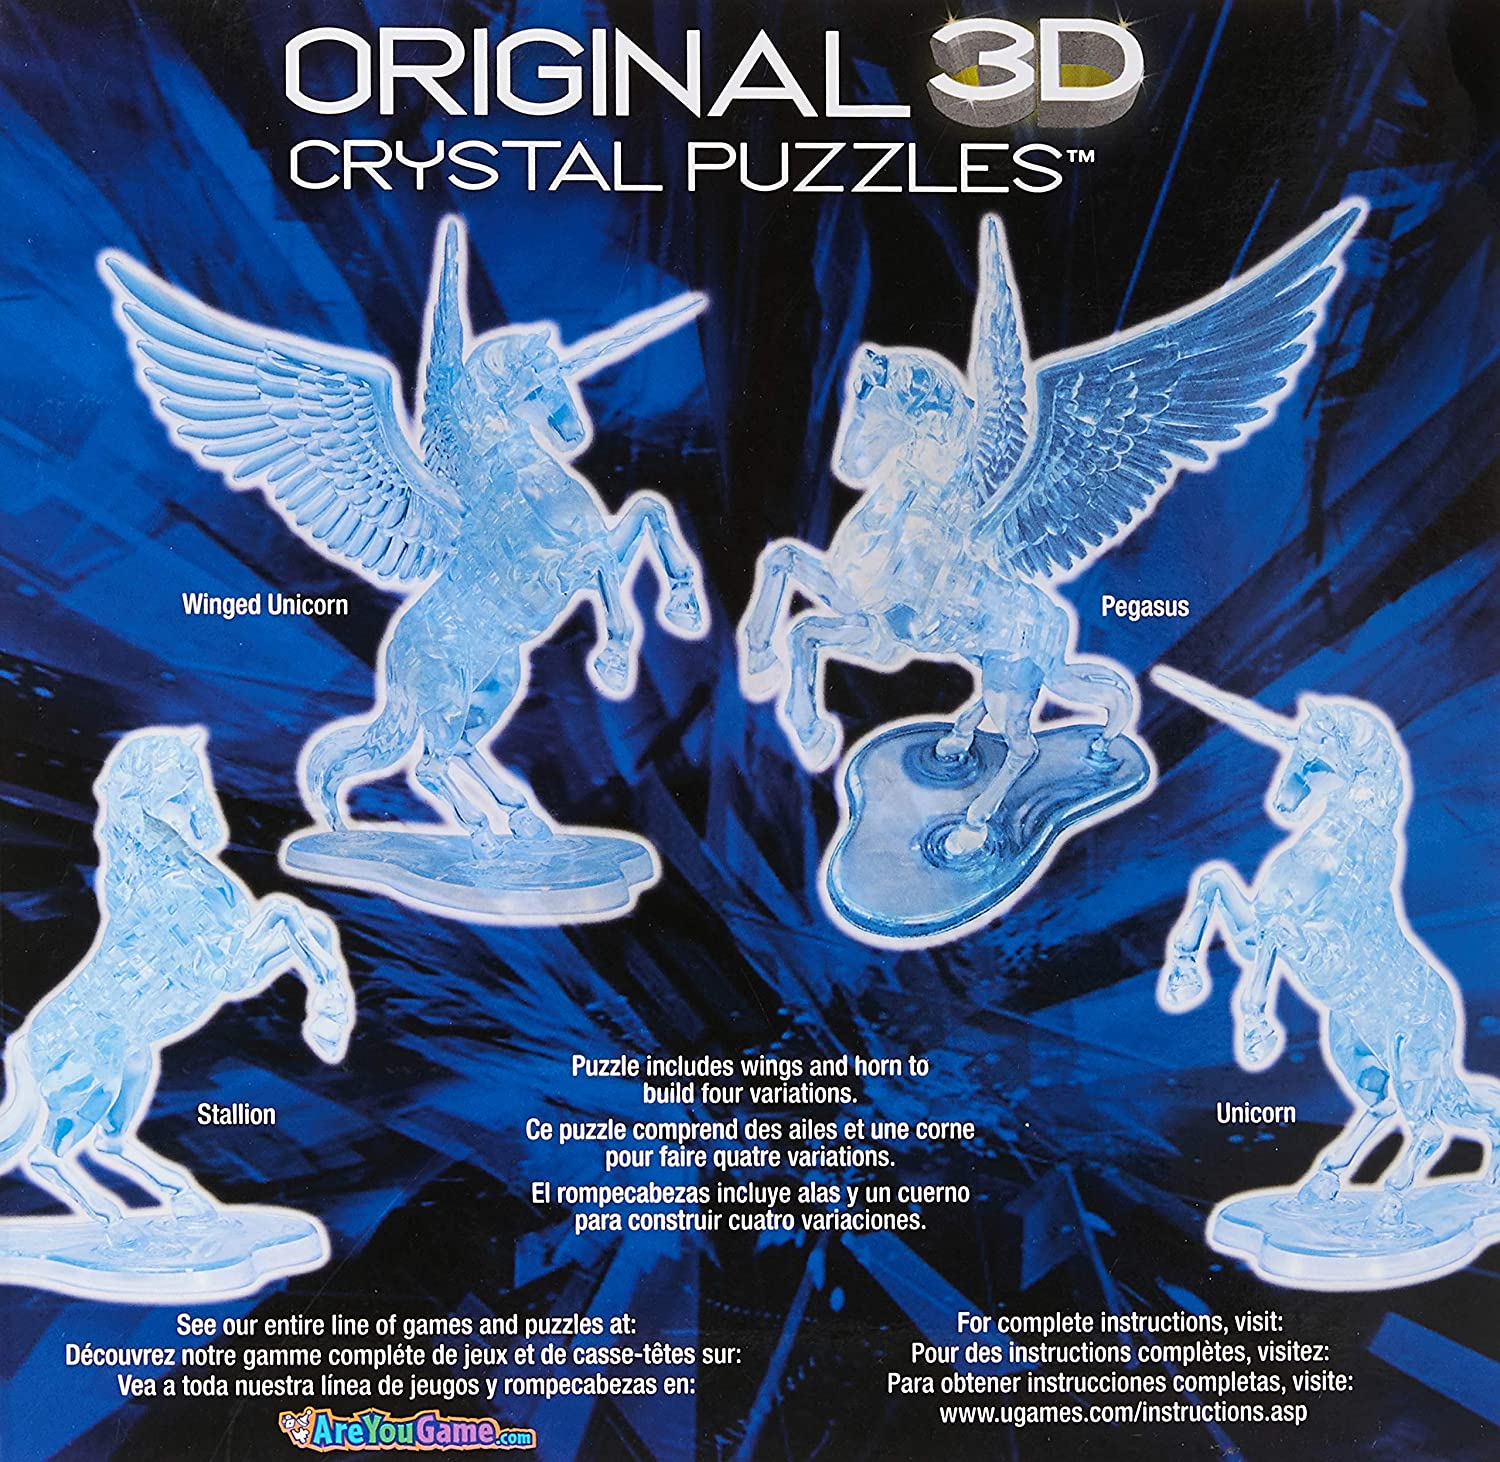 Dolphin Bepuzzled Original 3D Crystal Puzzle Deluxe Fun yet challenging...